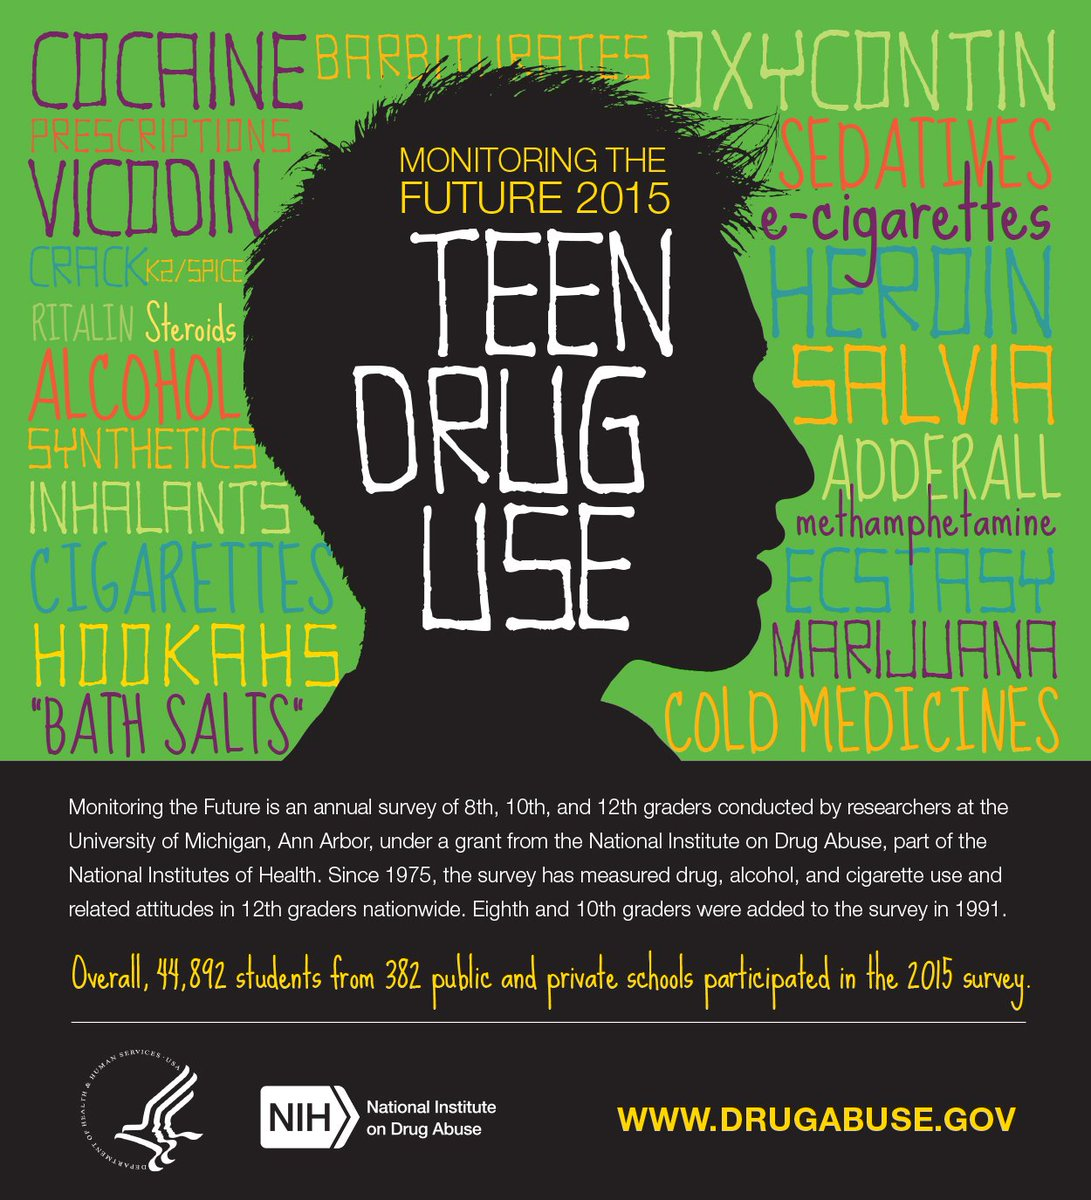 Welcome to our Twitter chat, where we'll discuss teen drug use and attitudes from the #MTF2015 results. https://t.co/HEoMXEi4DM